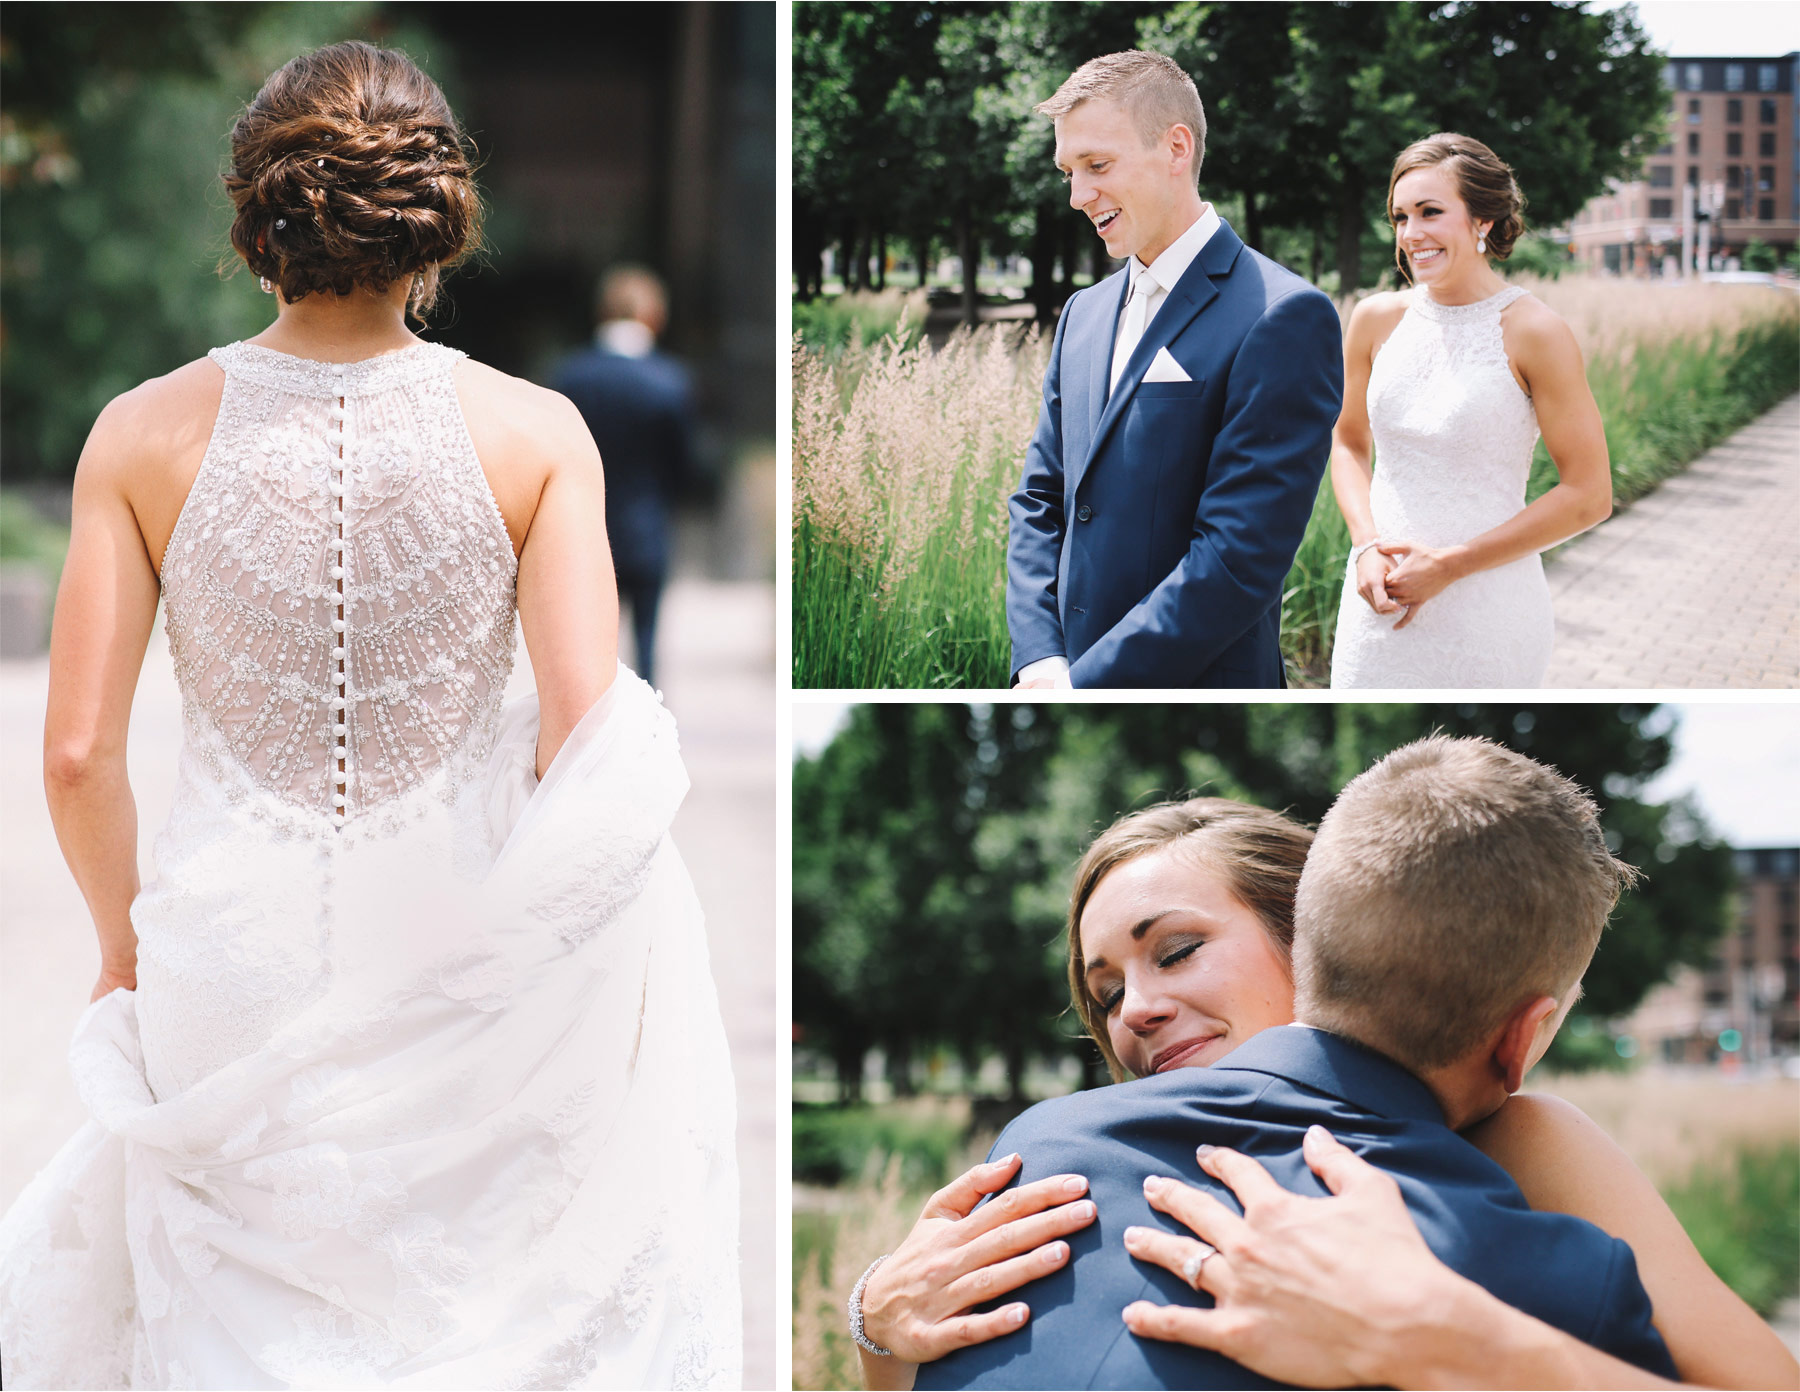 03-Minneapolis-Minnesota-Wedding-Photography-by-Vick-Photography-First-Look-Brianna-and-Bryce.jpg